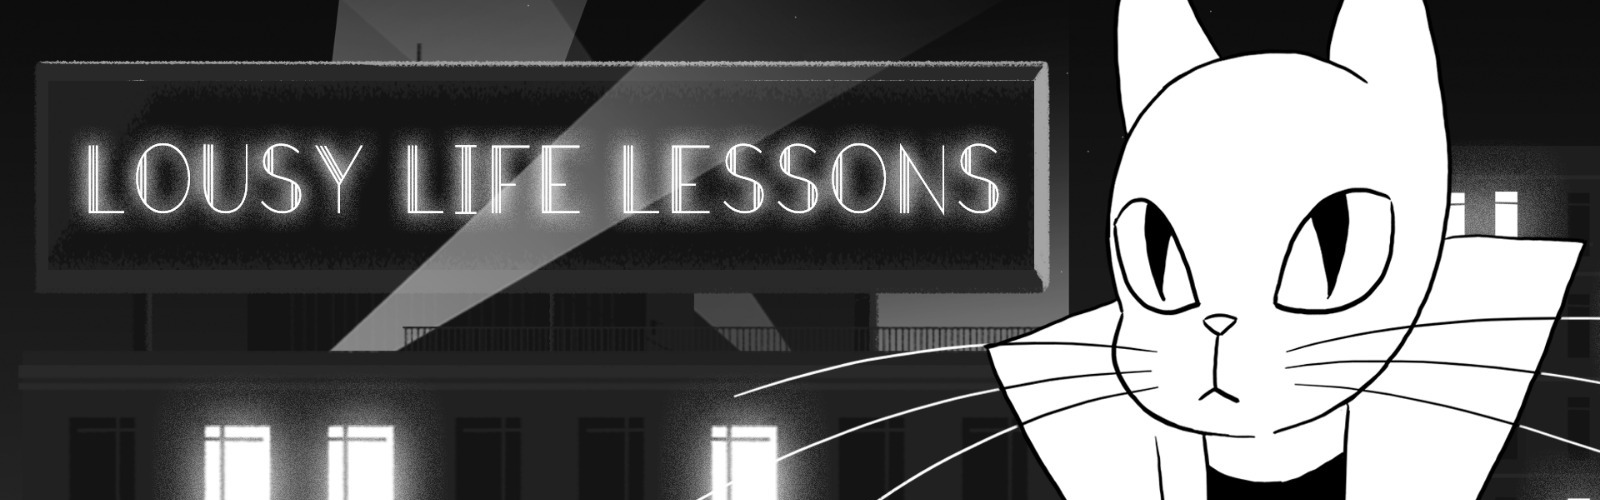 Lousy Life Lessons - [LLL]